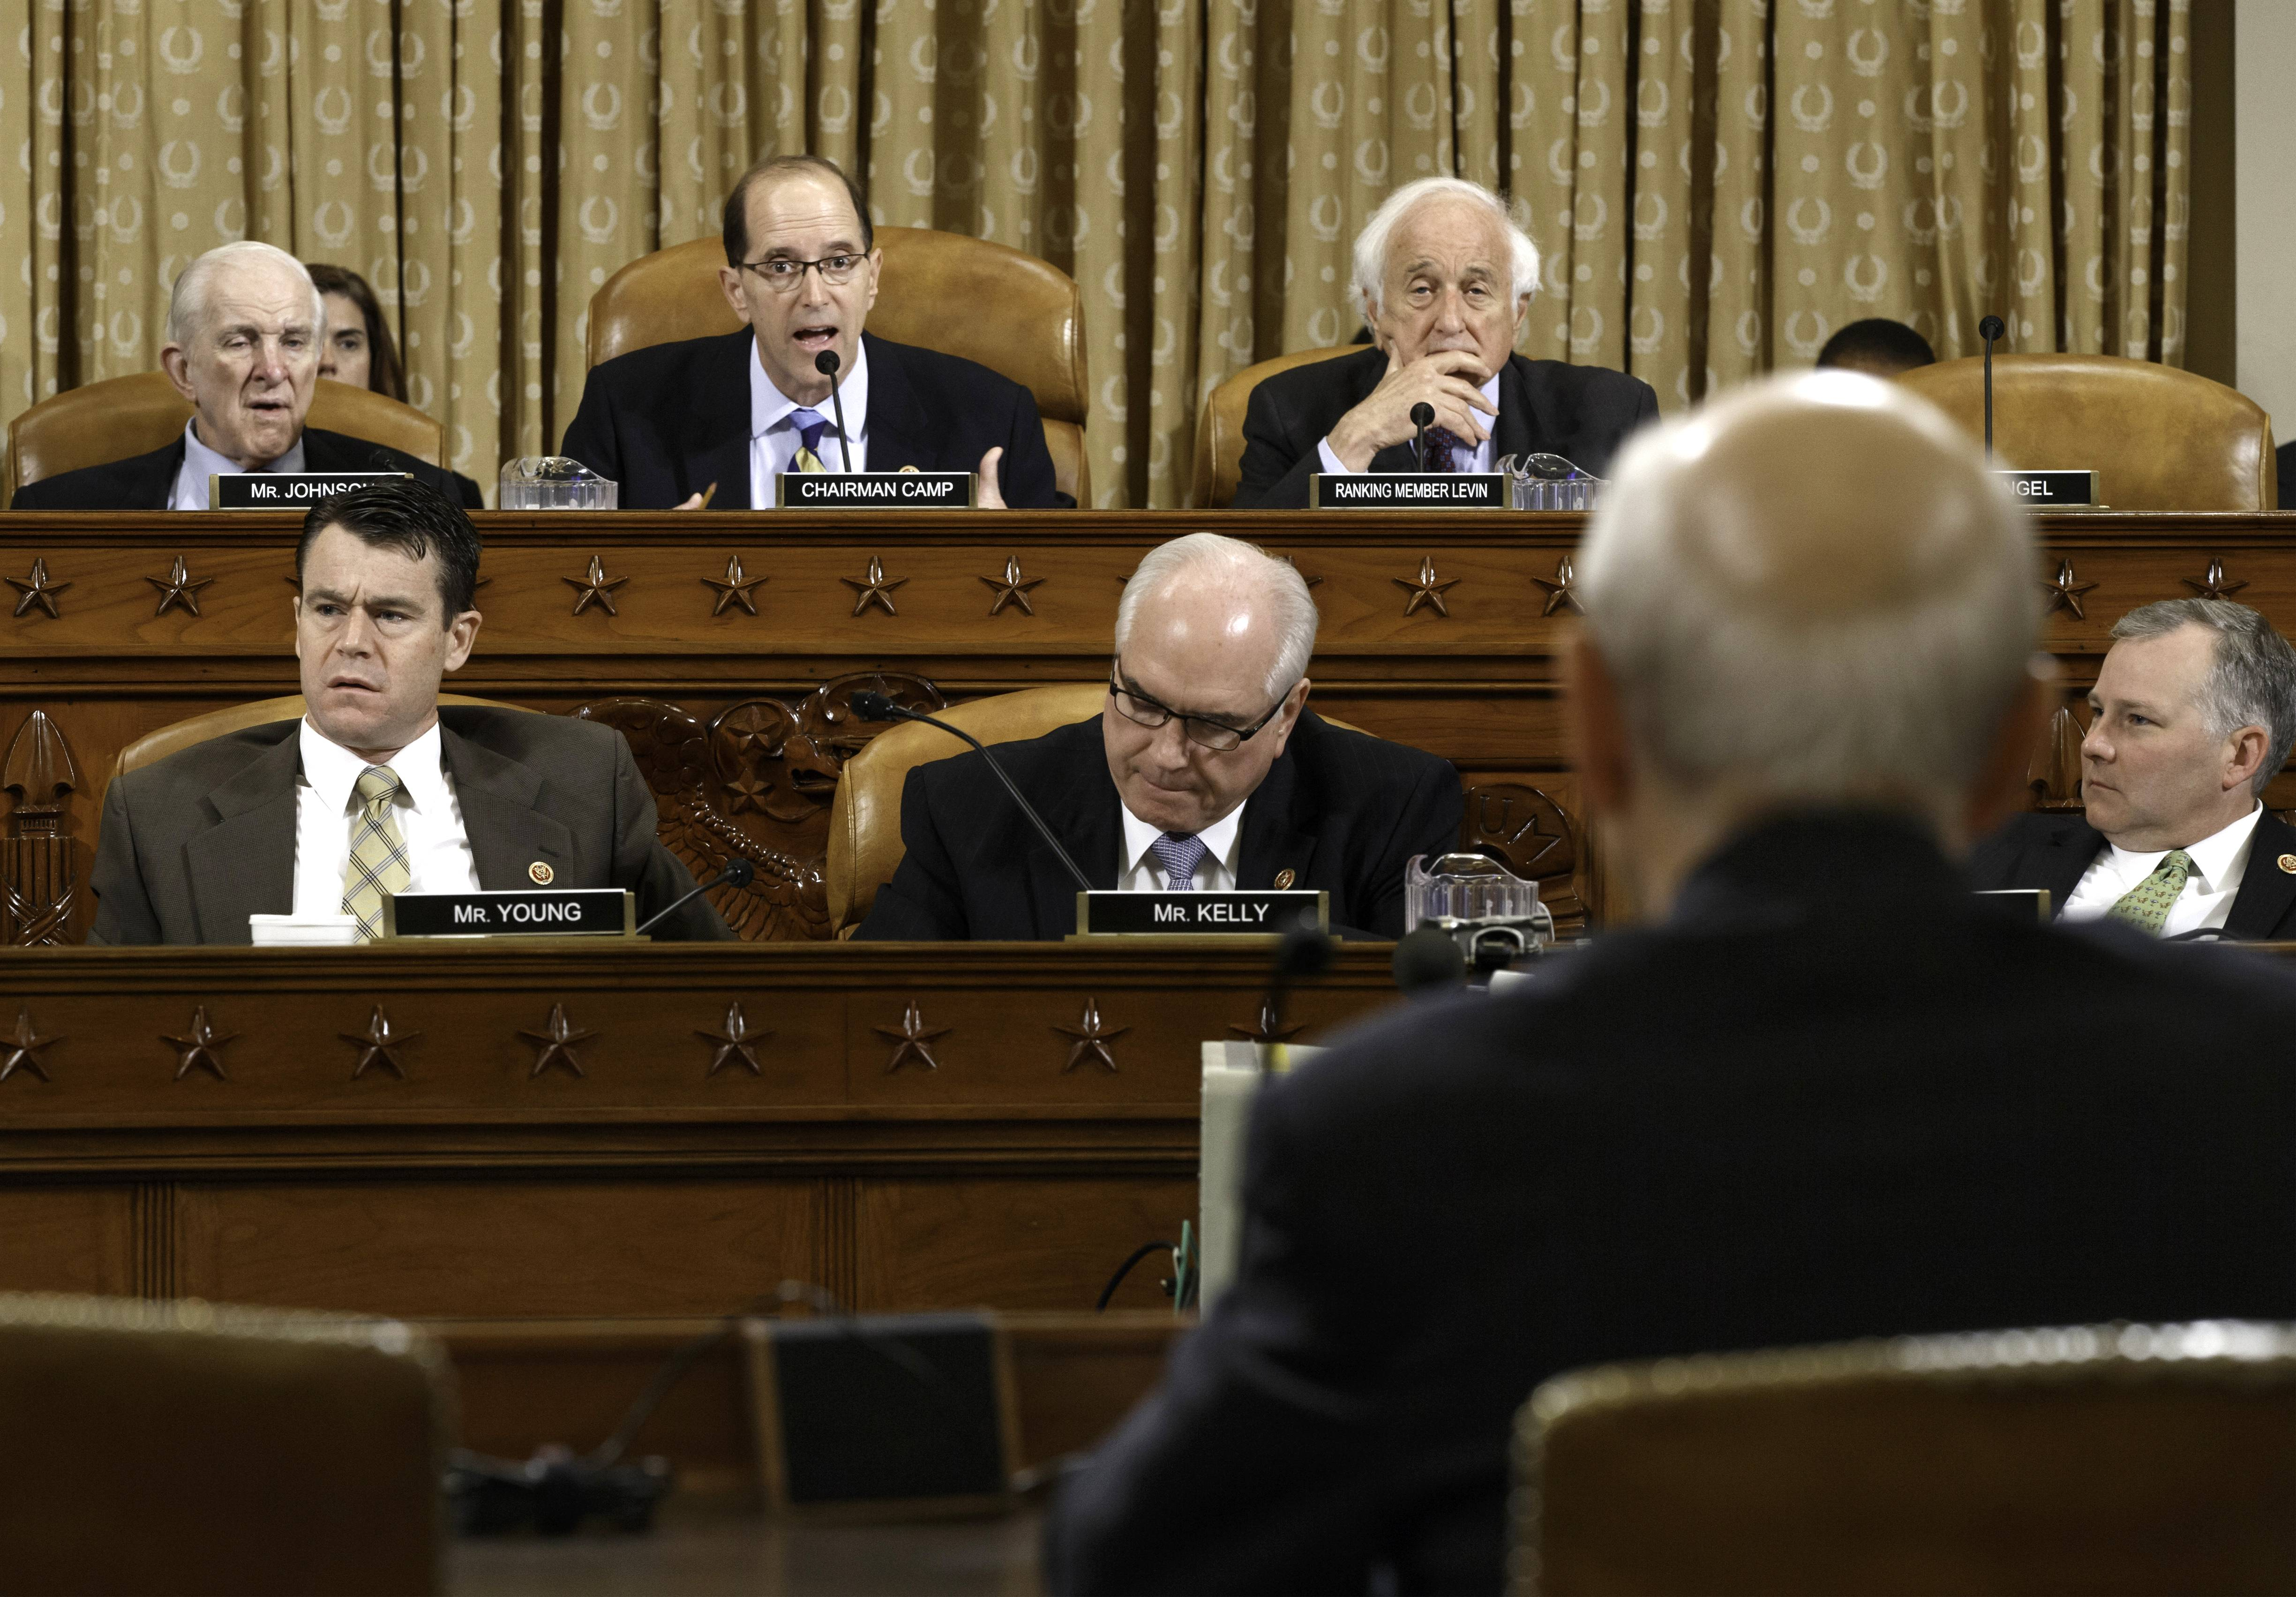 House Ways and Means Committee Chairman Rep. Dave Camp, R-Mich., center, flanked by the committee's ranking member Rep. Sander Levin, D-Mich., right, and Rep. Sam Johnson, R-Texas, questions Internal Revenue Service (IRS) Commissioner John Koskinen in the continuing probe of whether Tea Party groups were improperly targeted for increased scrutiny by the IRS.